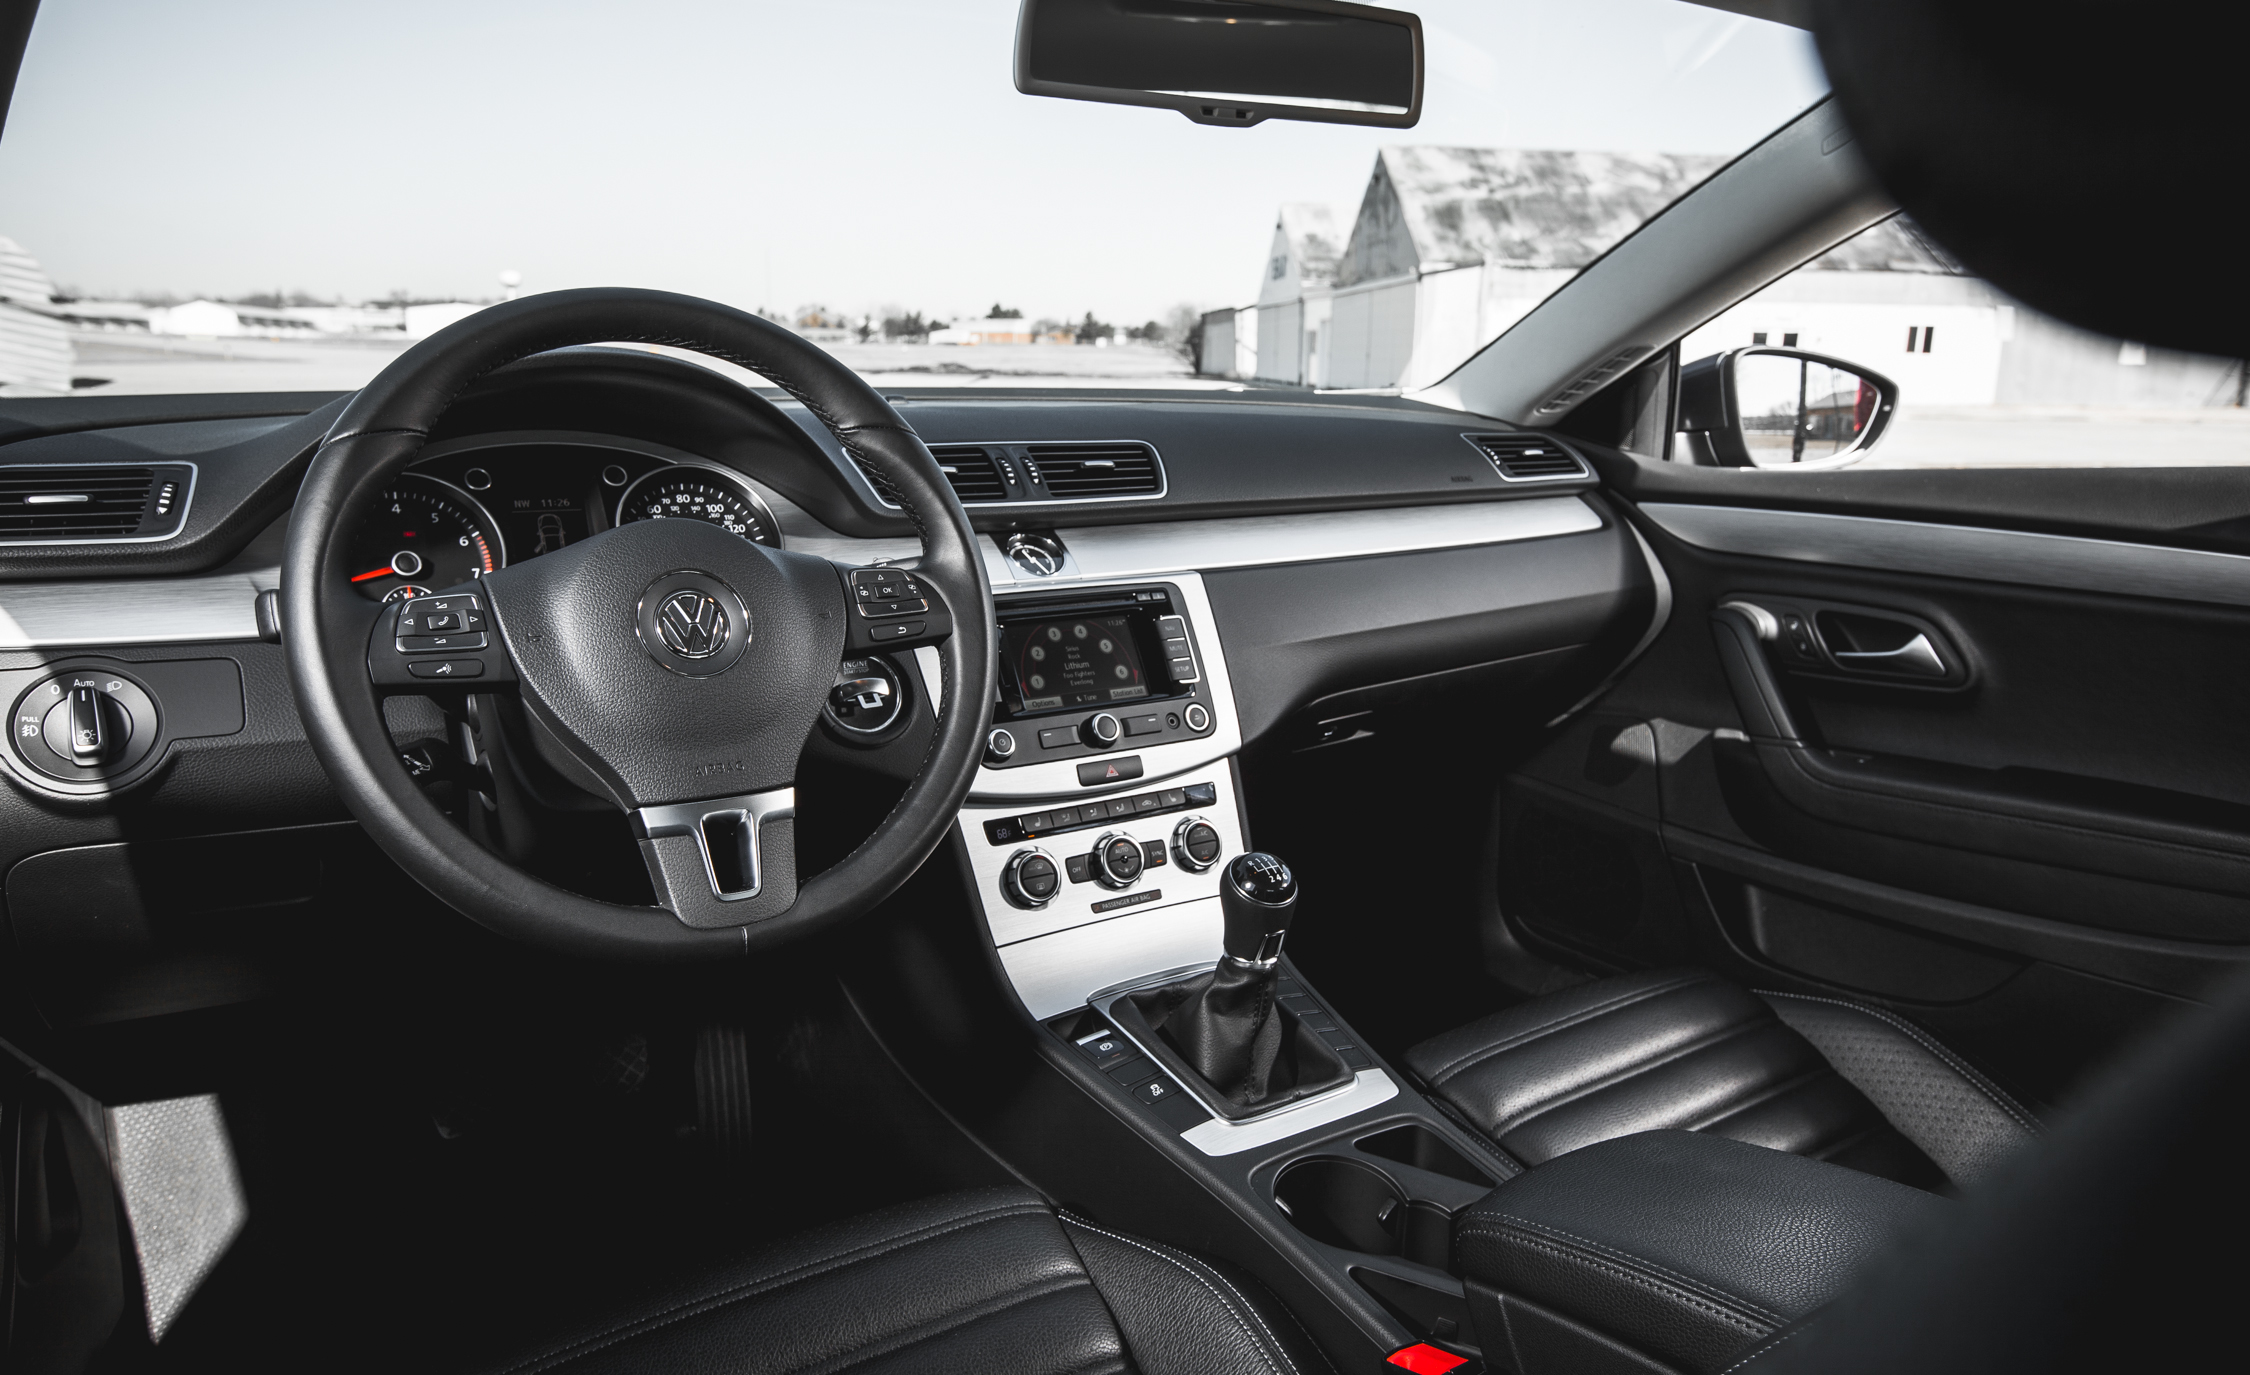 2015 Volkswagen CC Sport Interior (Photo 13 of 15)